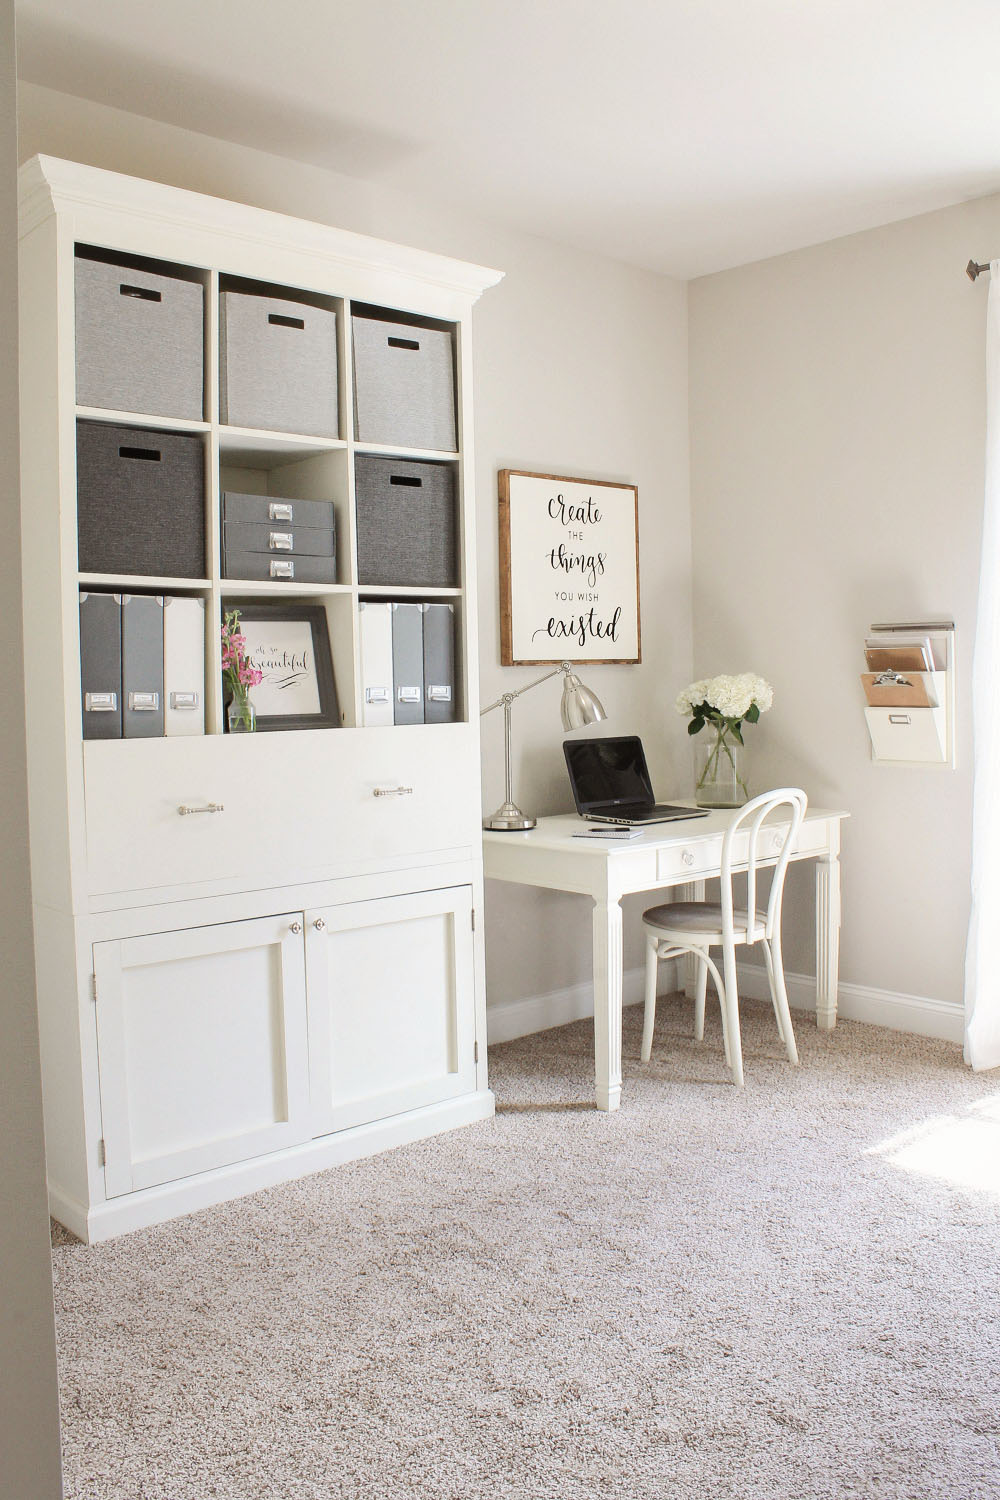 Rustic Chic Home Office Reveal - Angela Marie Made